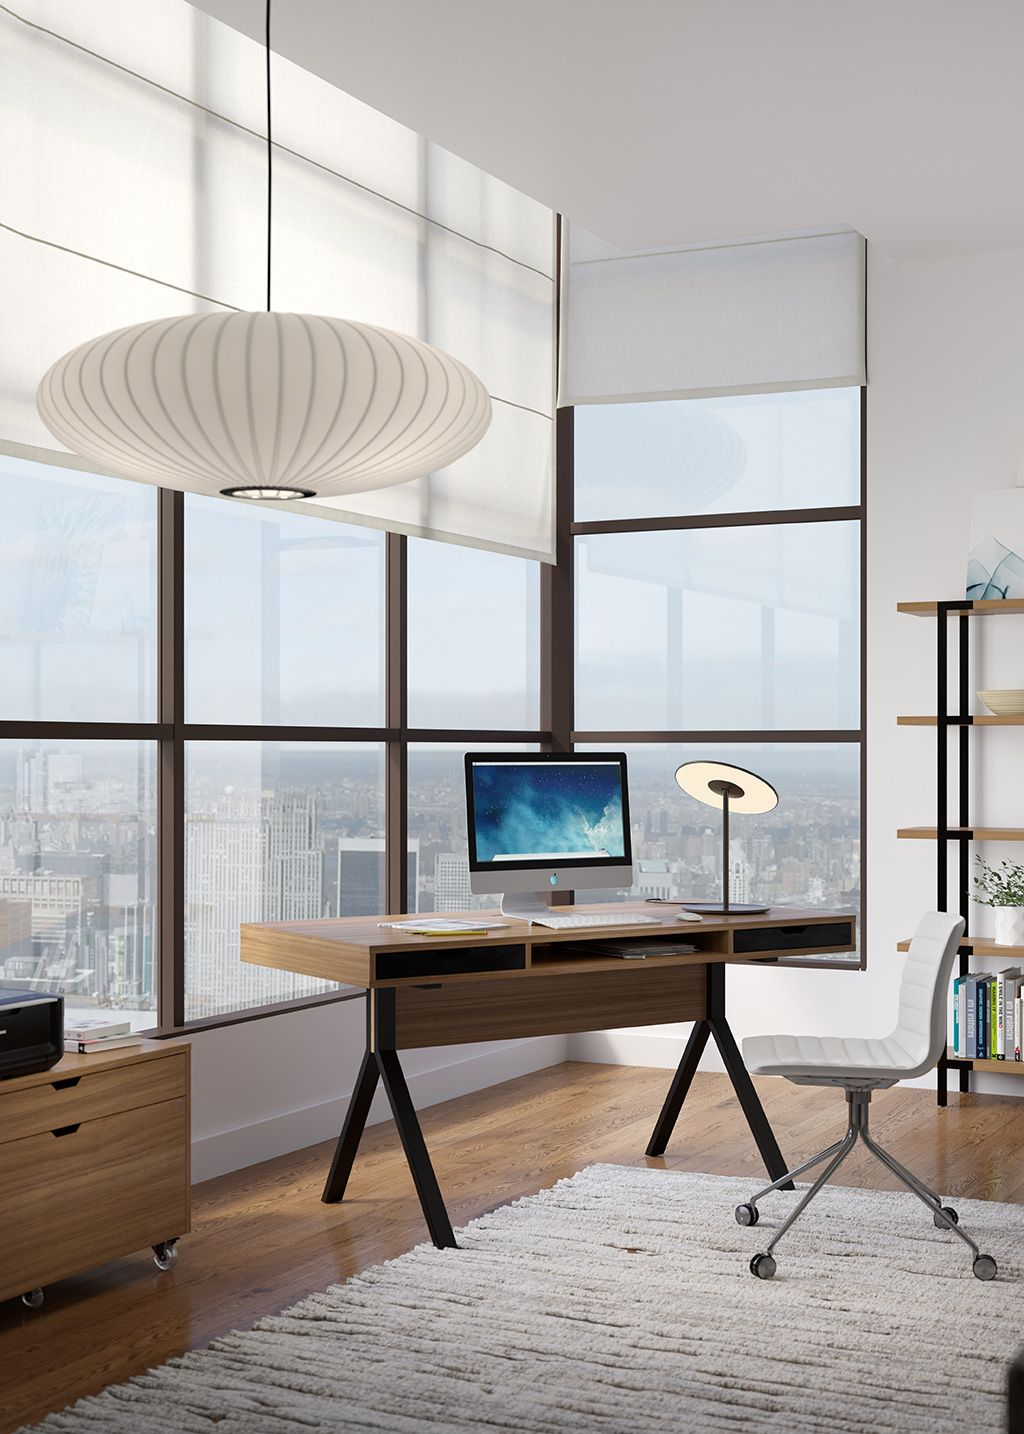 designing your home office. On The Blog - 9 Tips For Designing Your Home Office